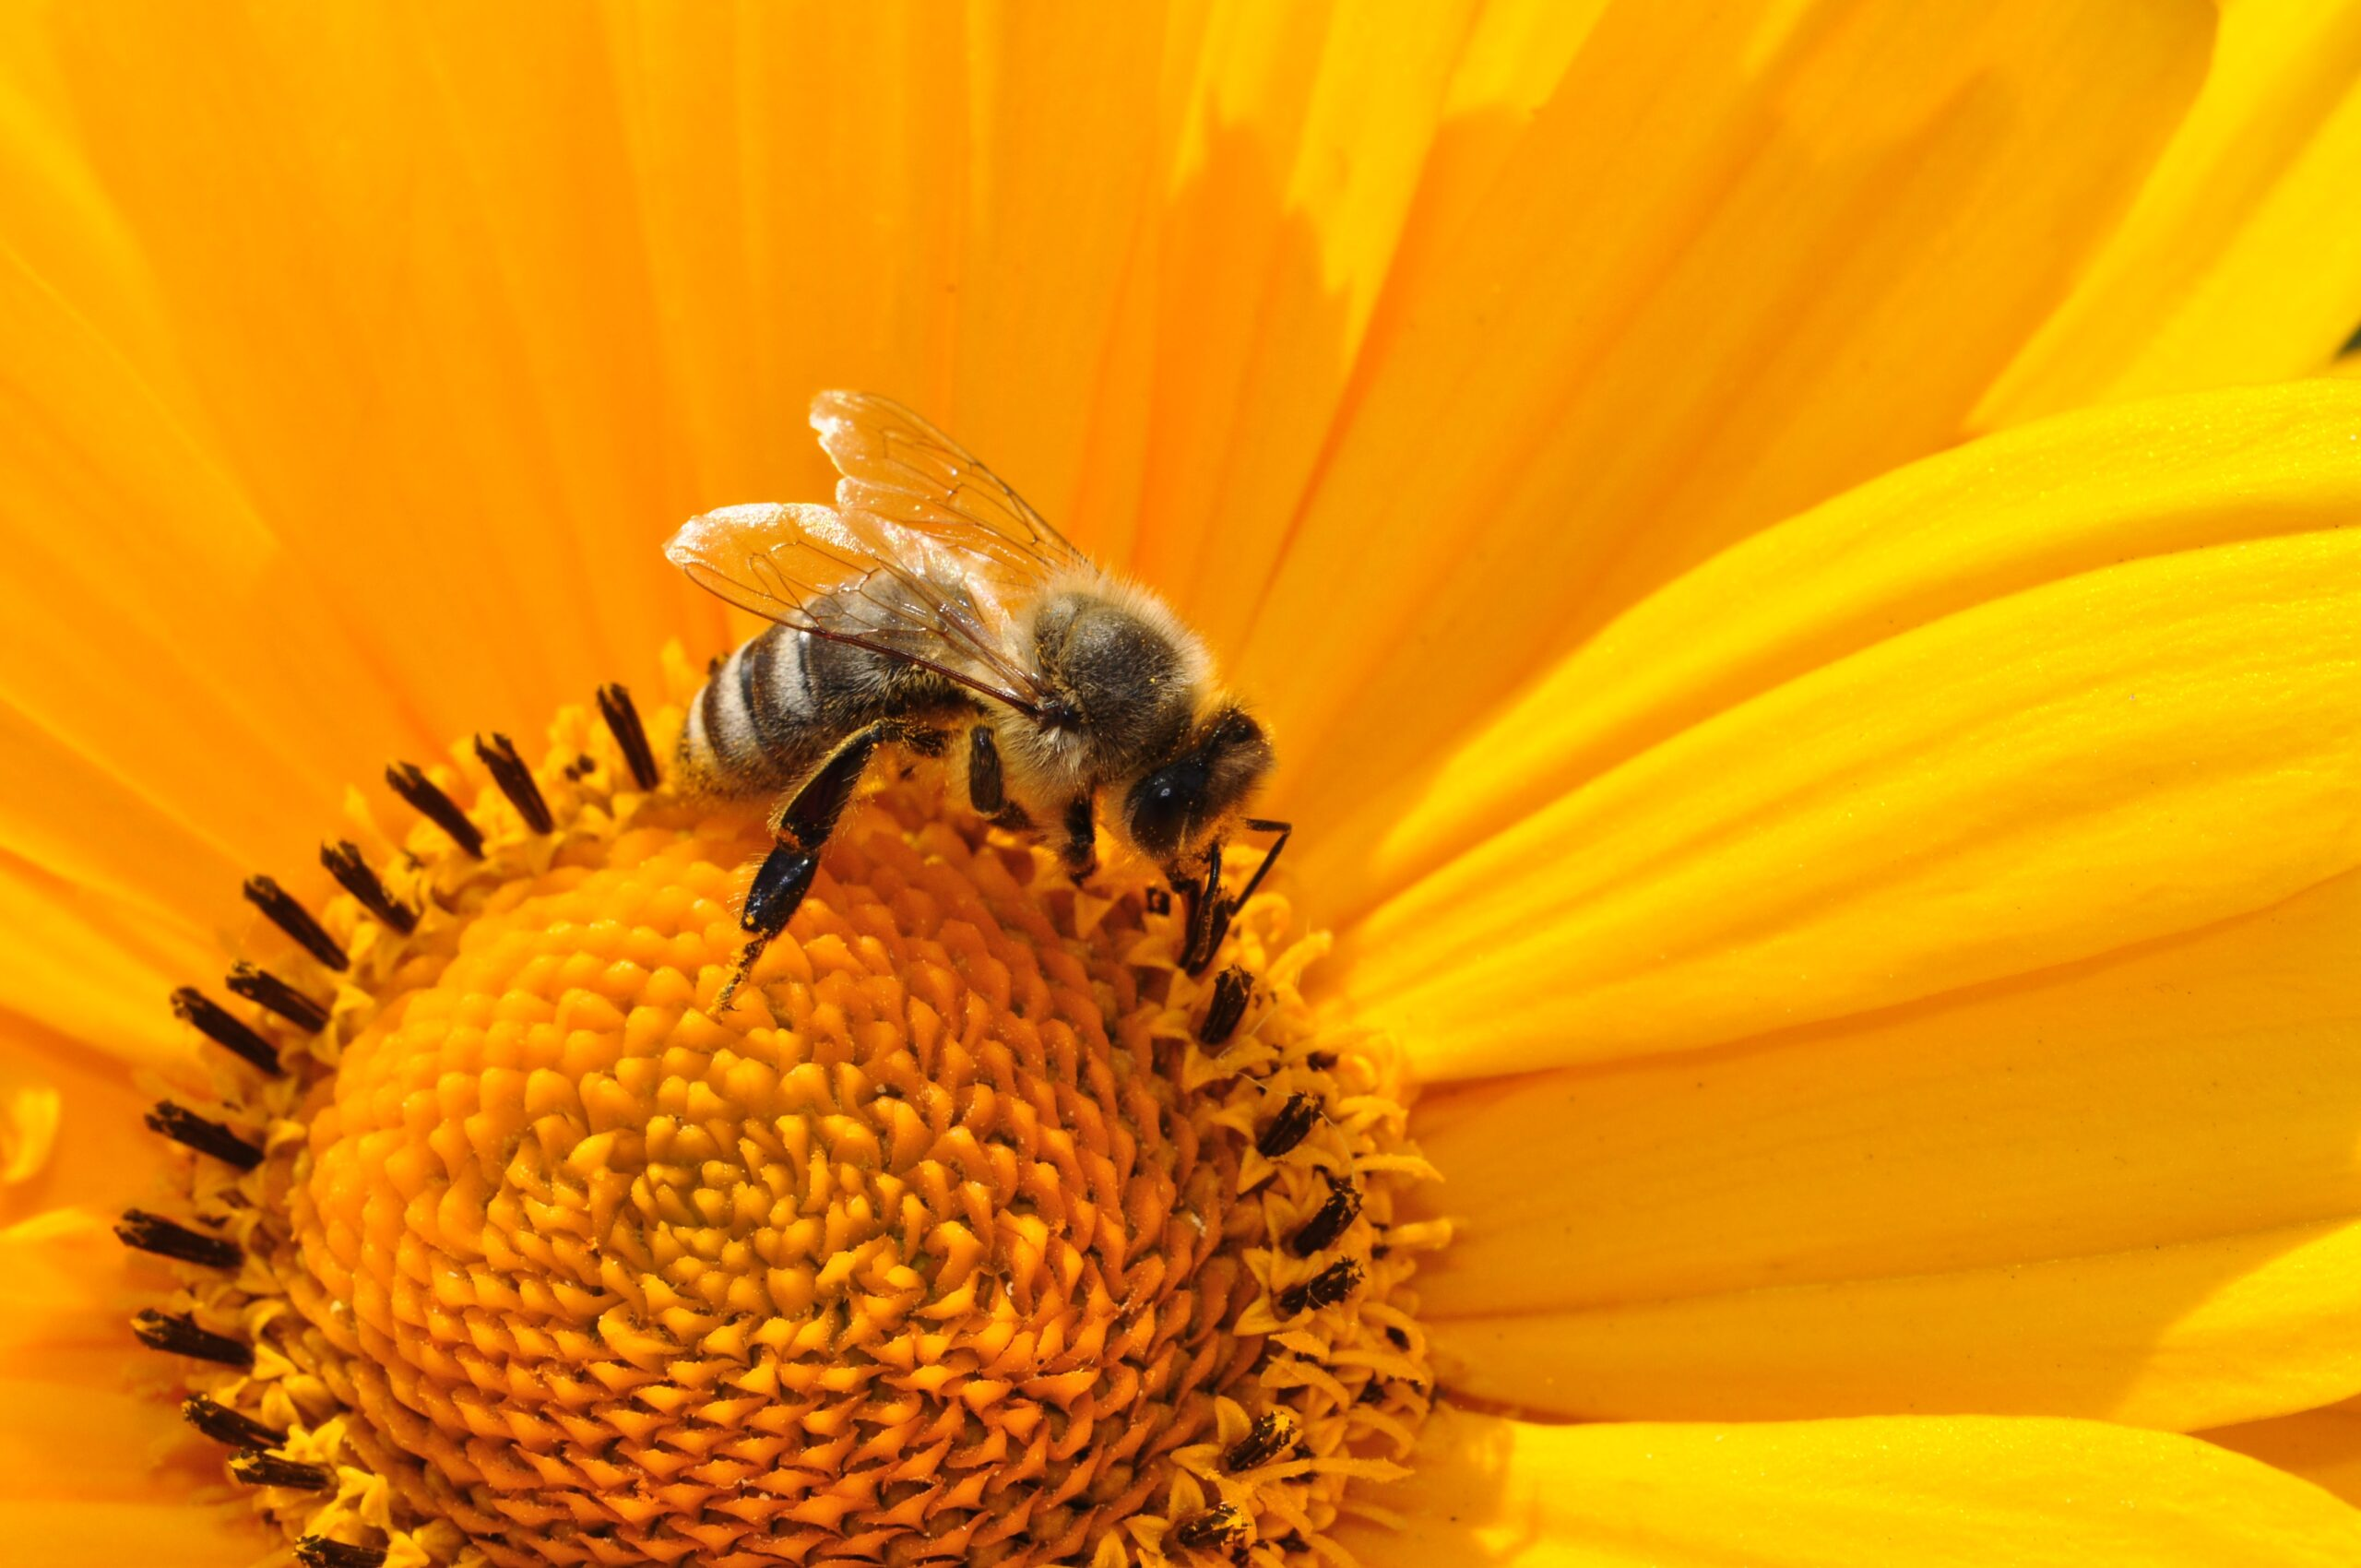 A bee lands on a yellow flower.